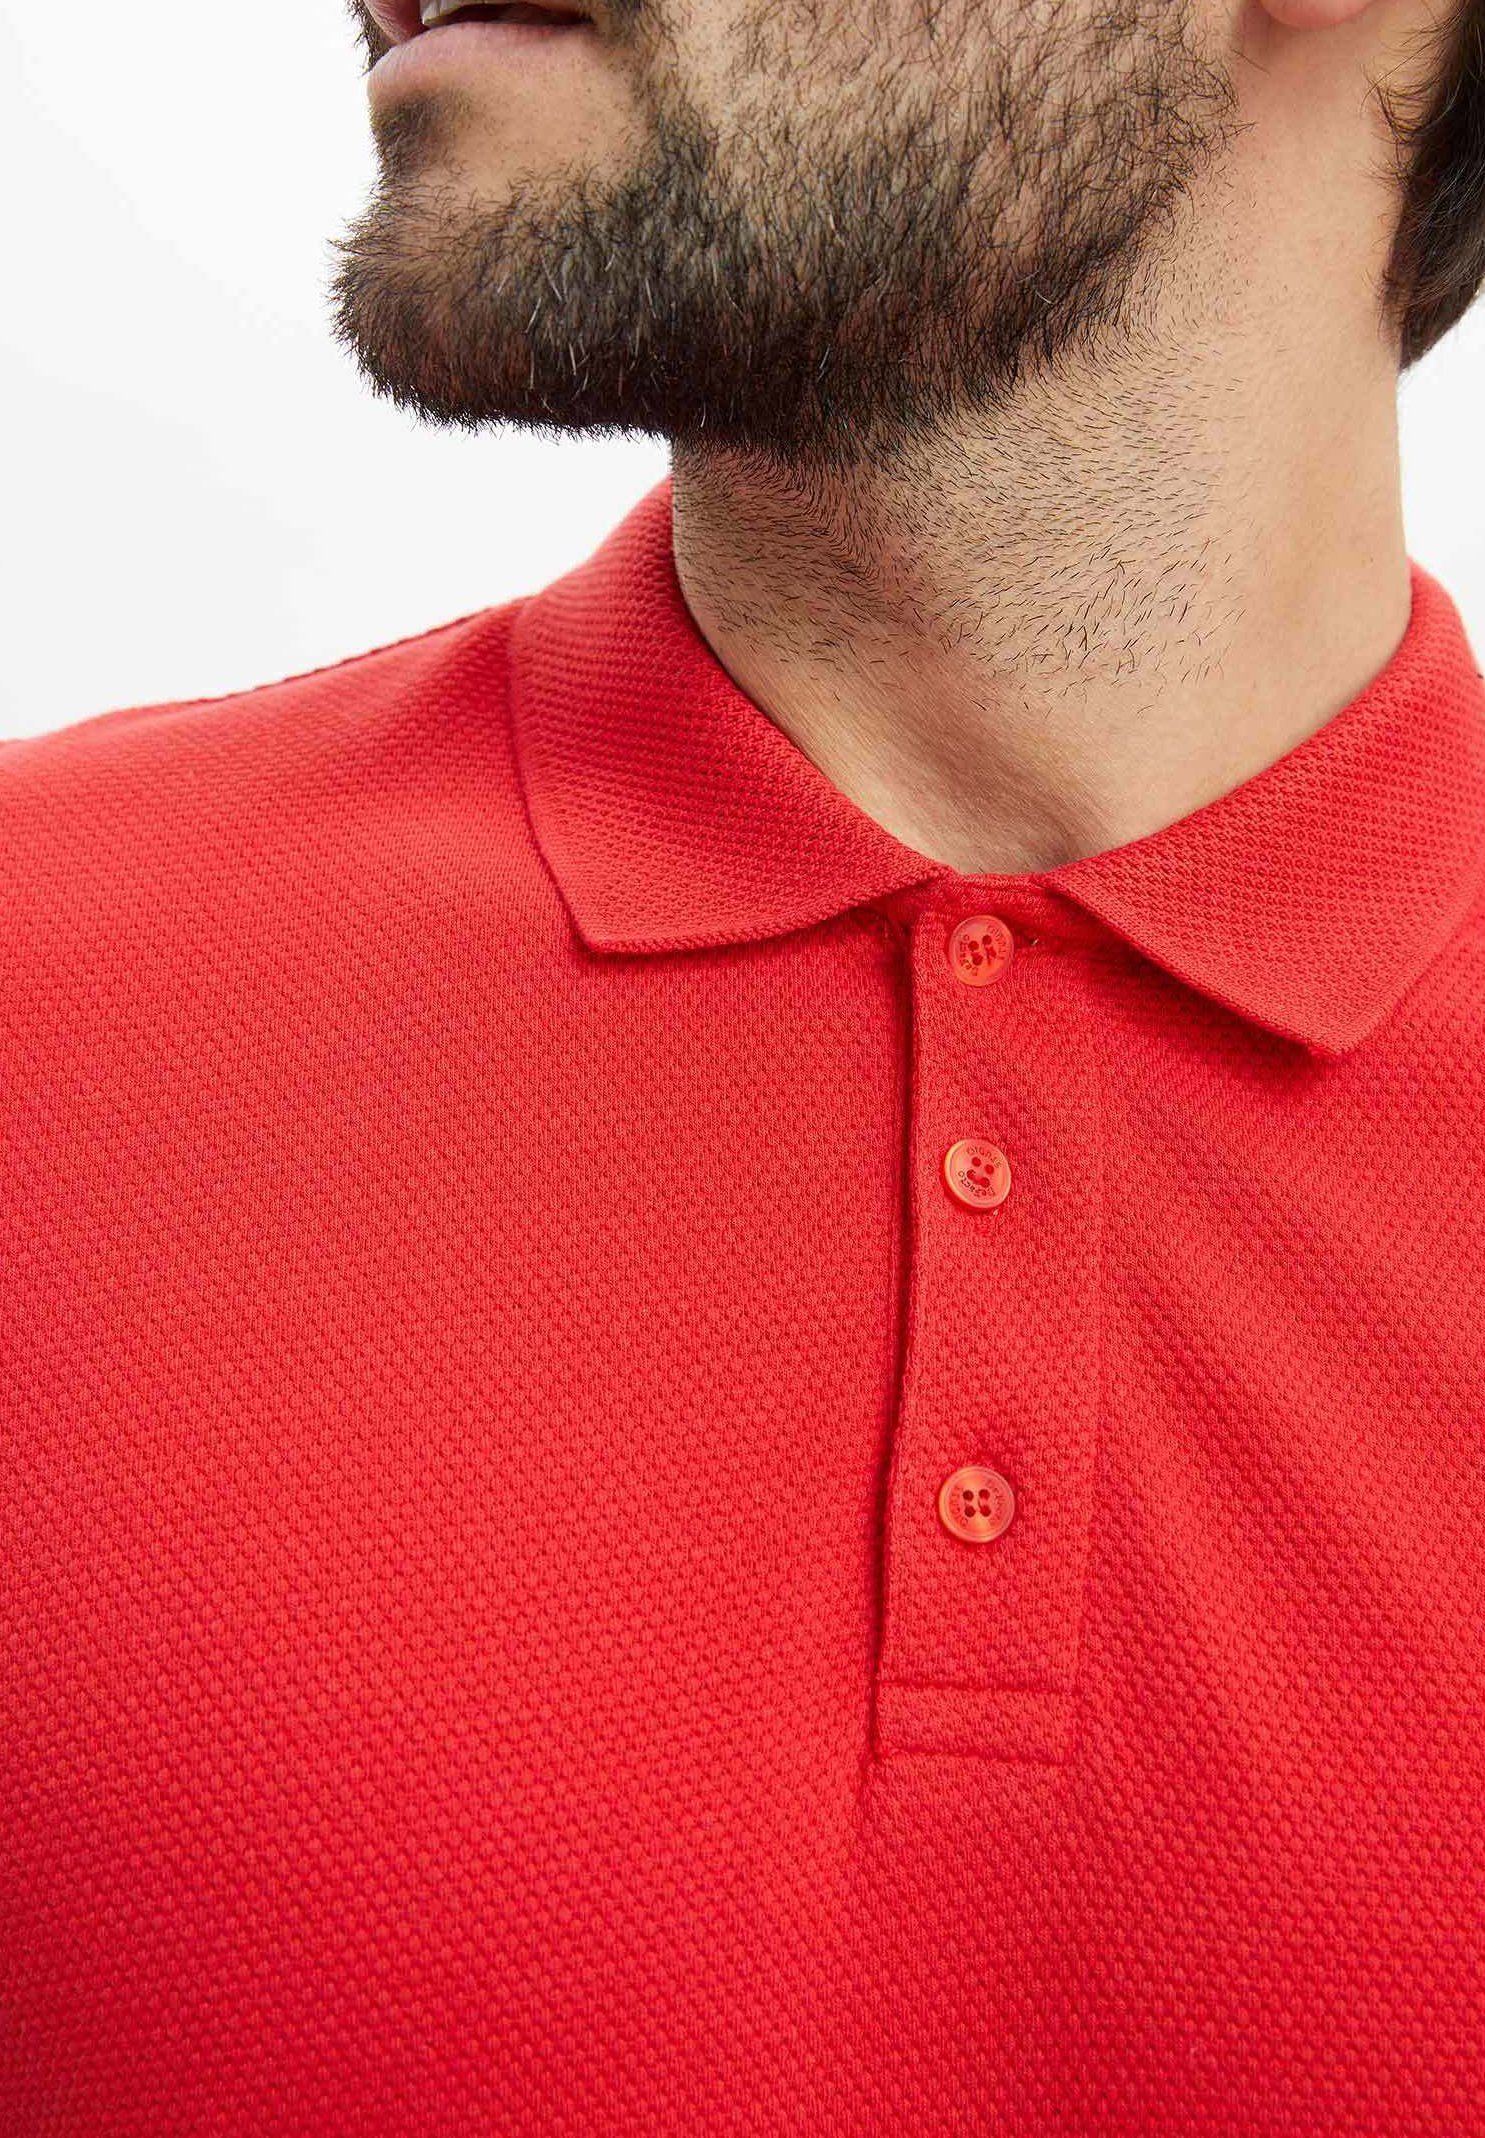 DeFacto Polo shirt - red fGnQM